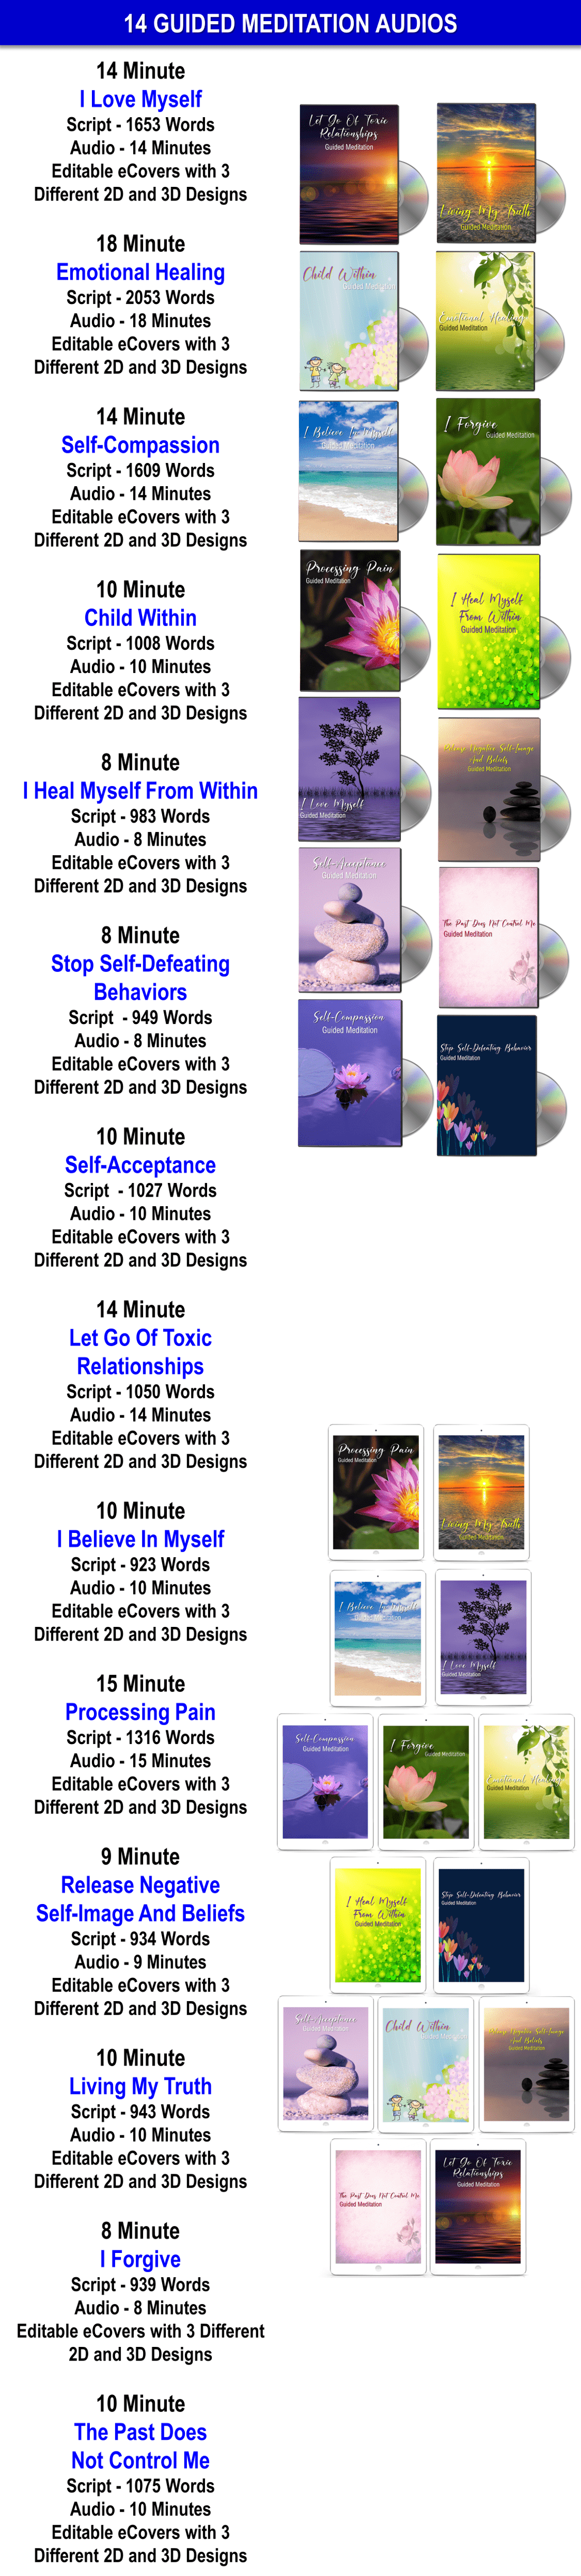 14 Guided Meditation Audios, Sales Materials + Private Label Rights